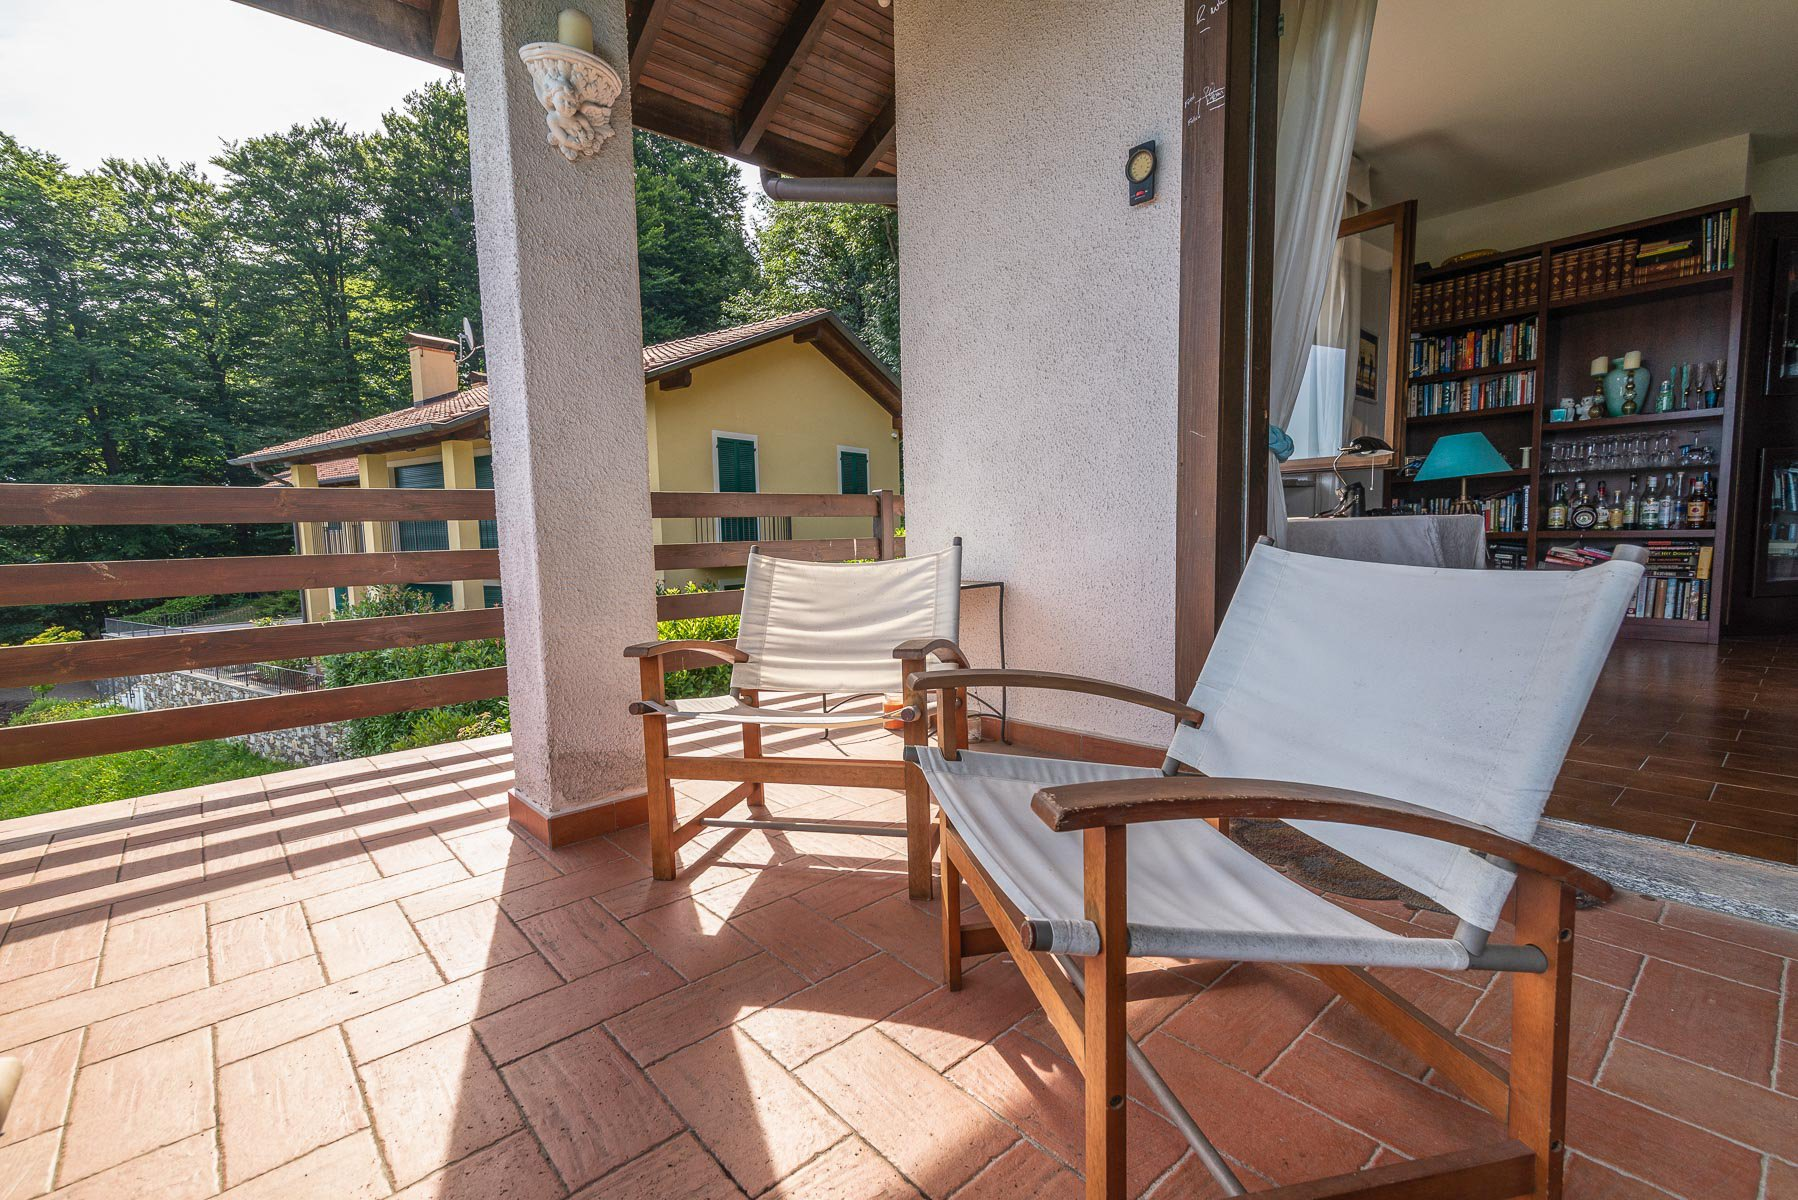 villa for sale on the hill of Stresa with lake view- balcony